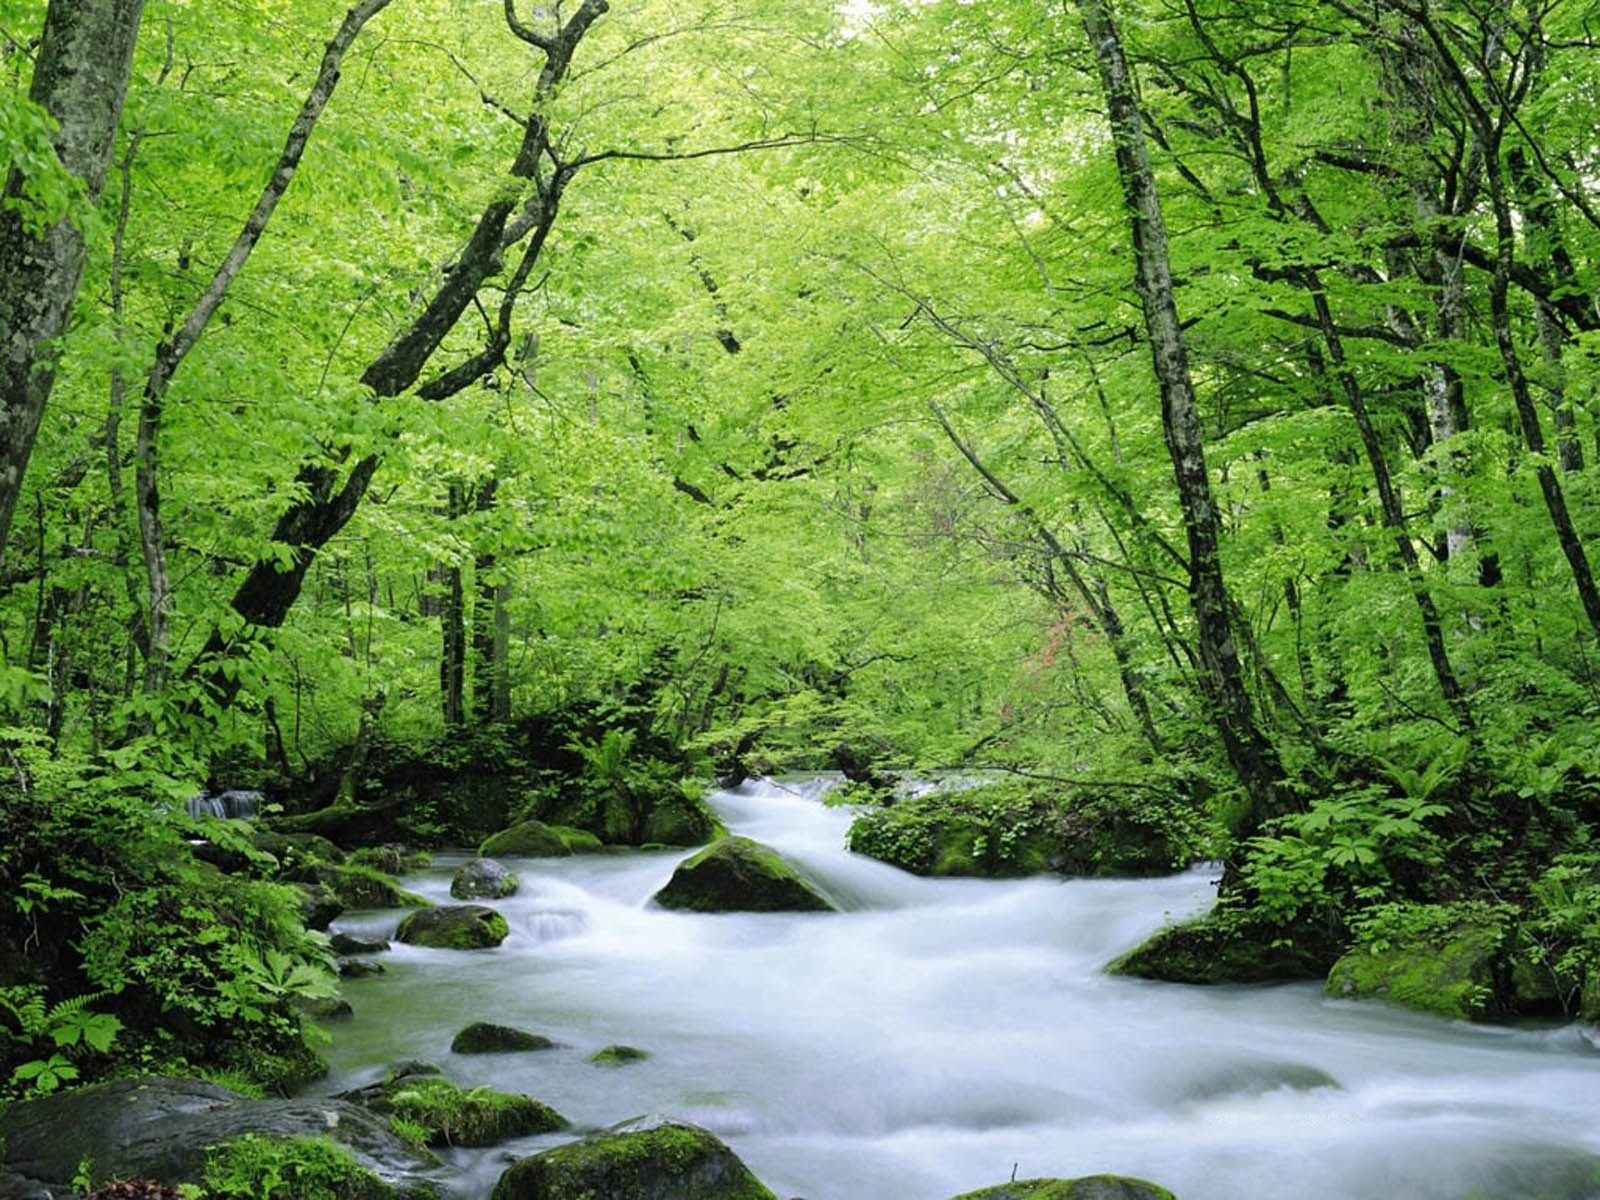 Wallpapers green nature wallpapers - Background images nature ...